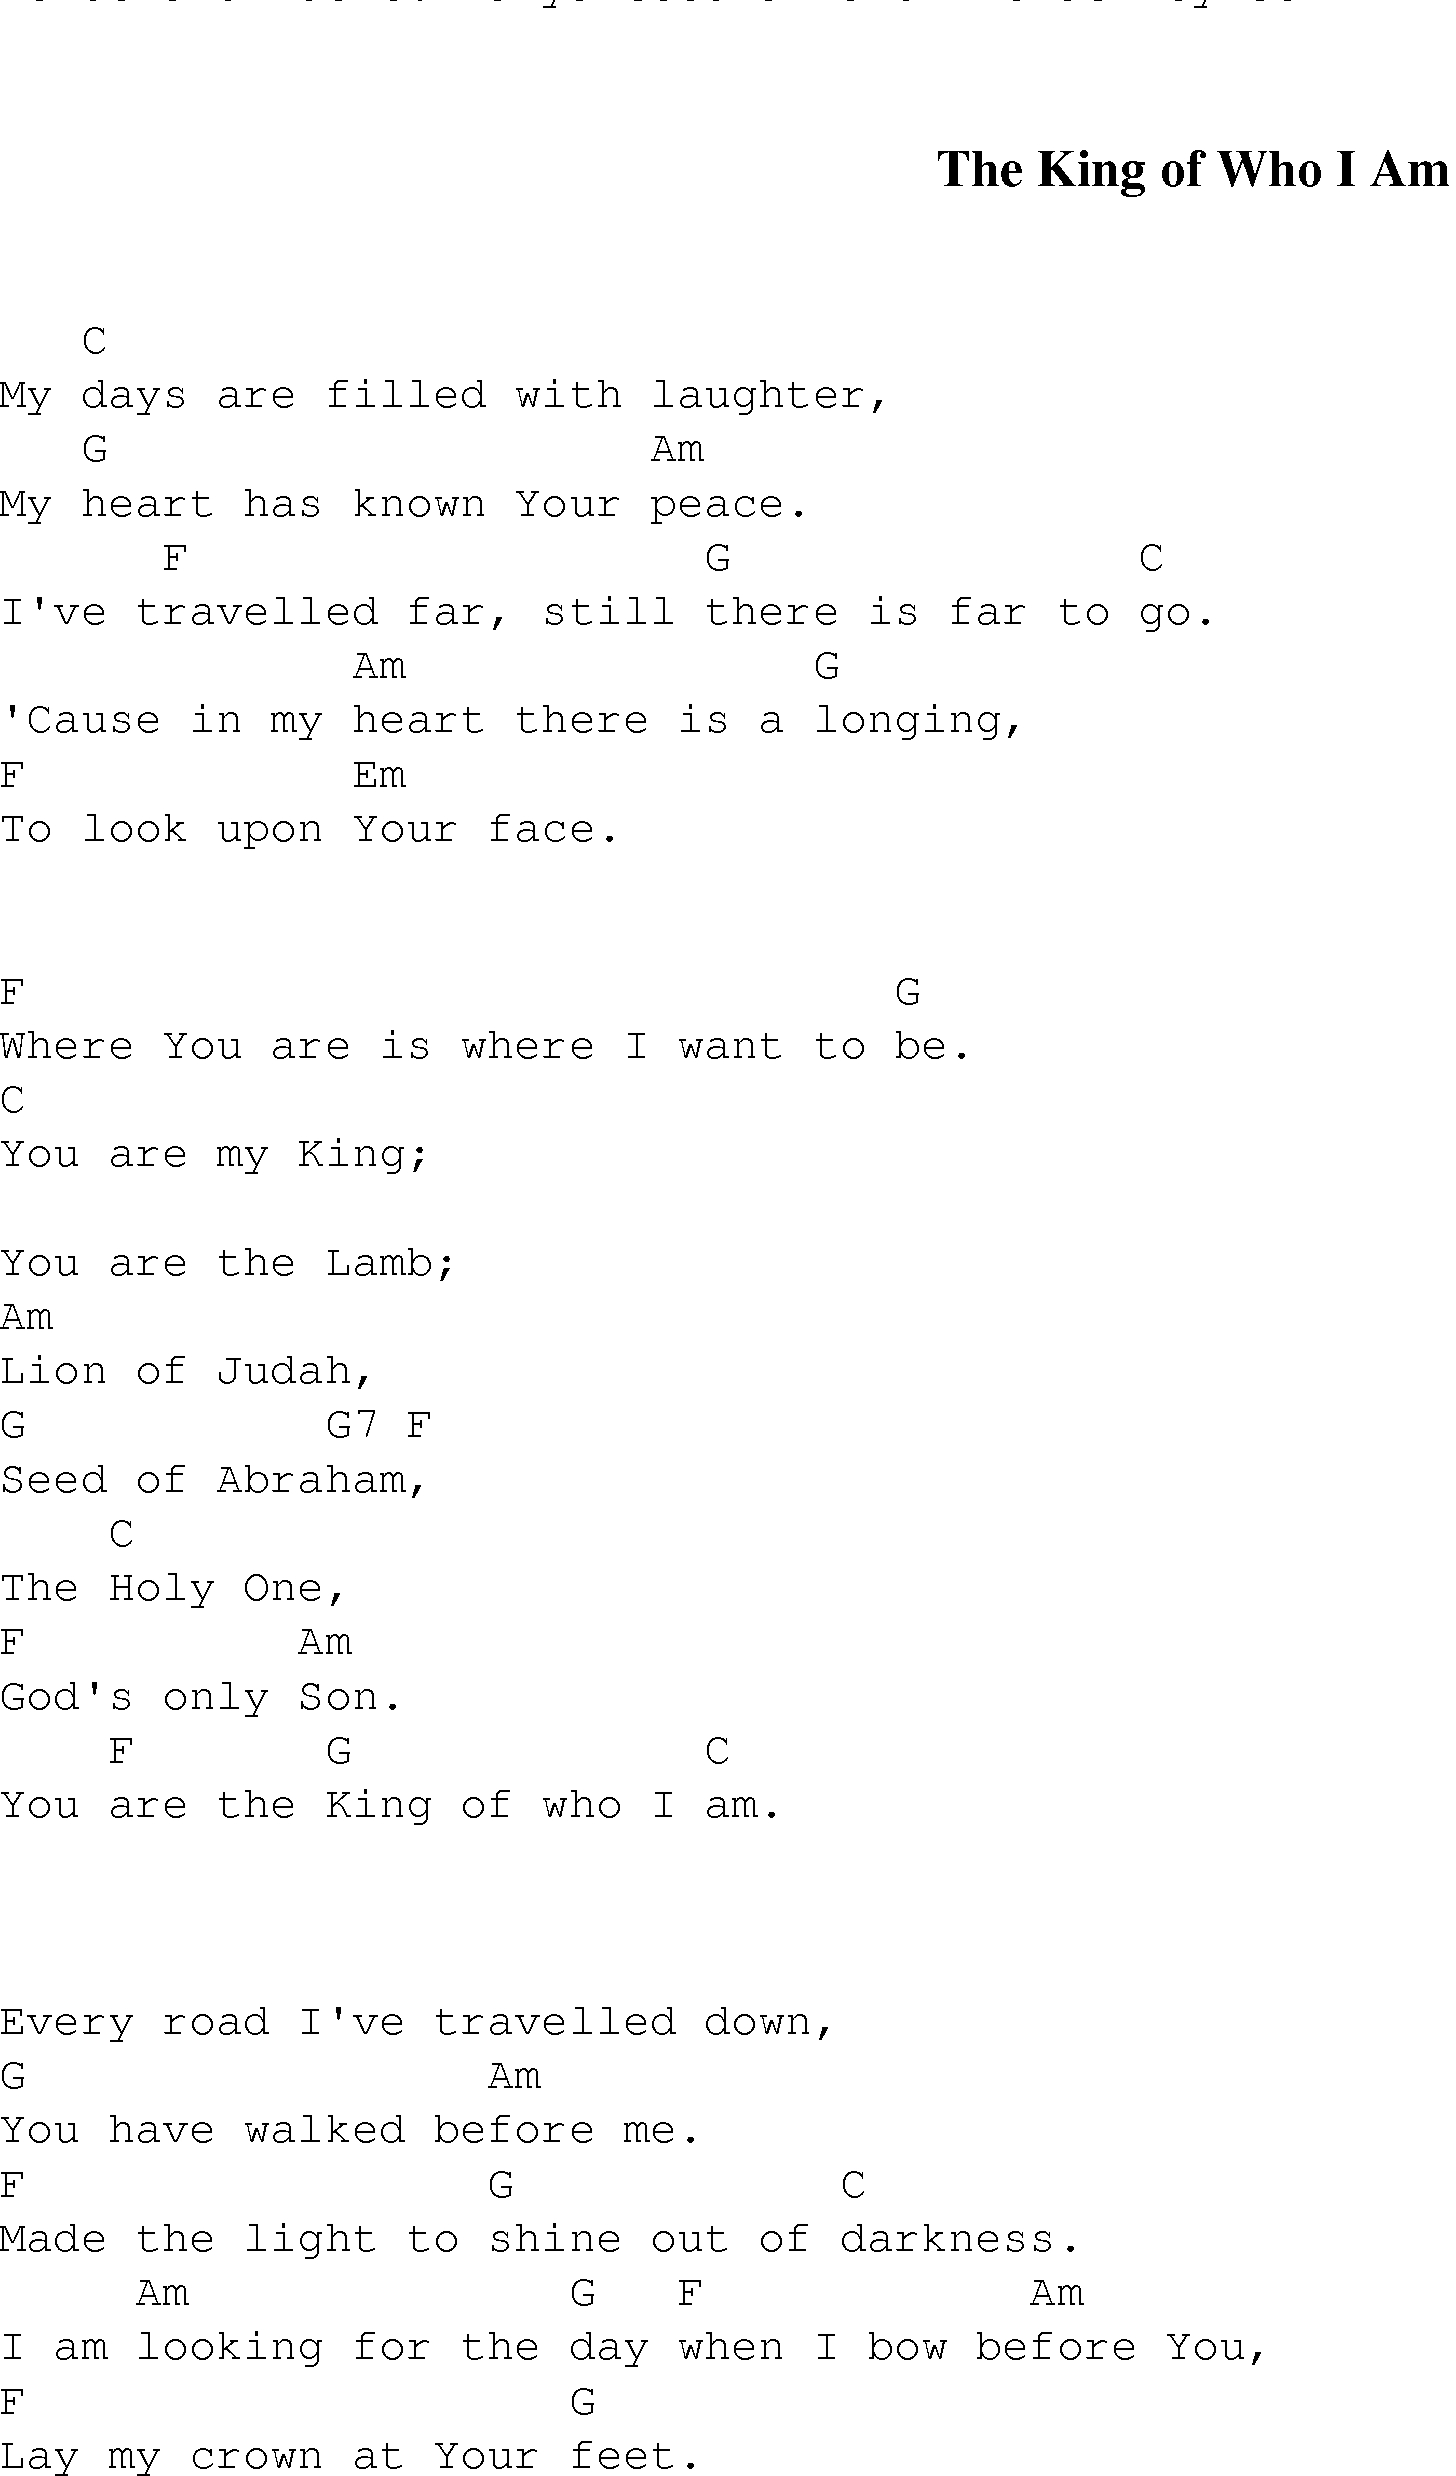 King Of My Heart Chords The King Of Who I Am Christian Gospel Song Lyrics And Chords